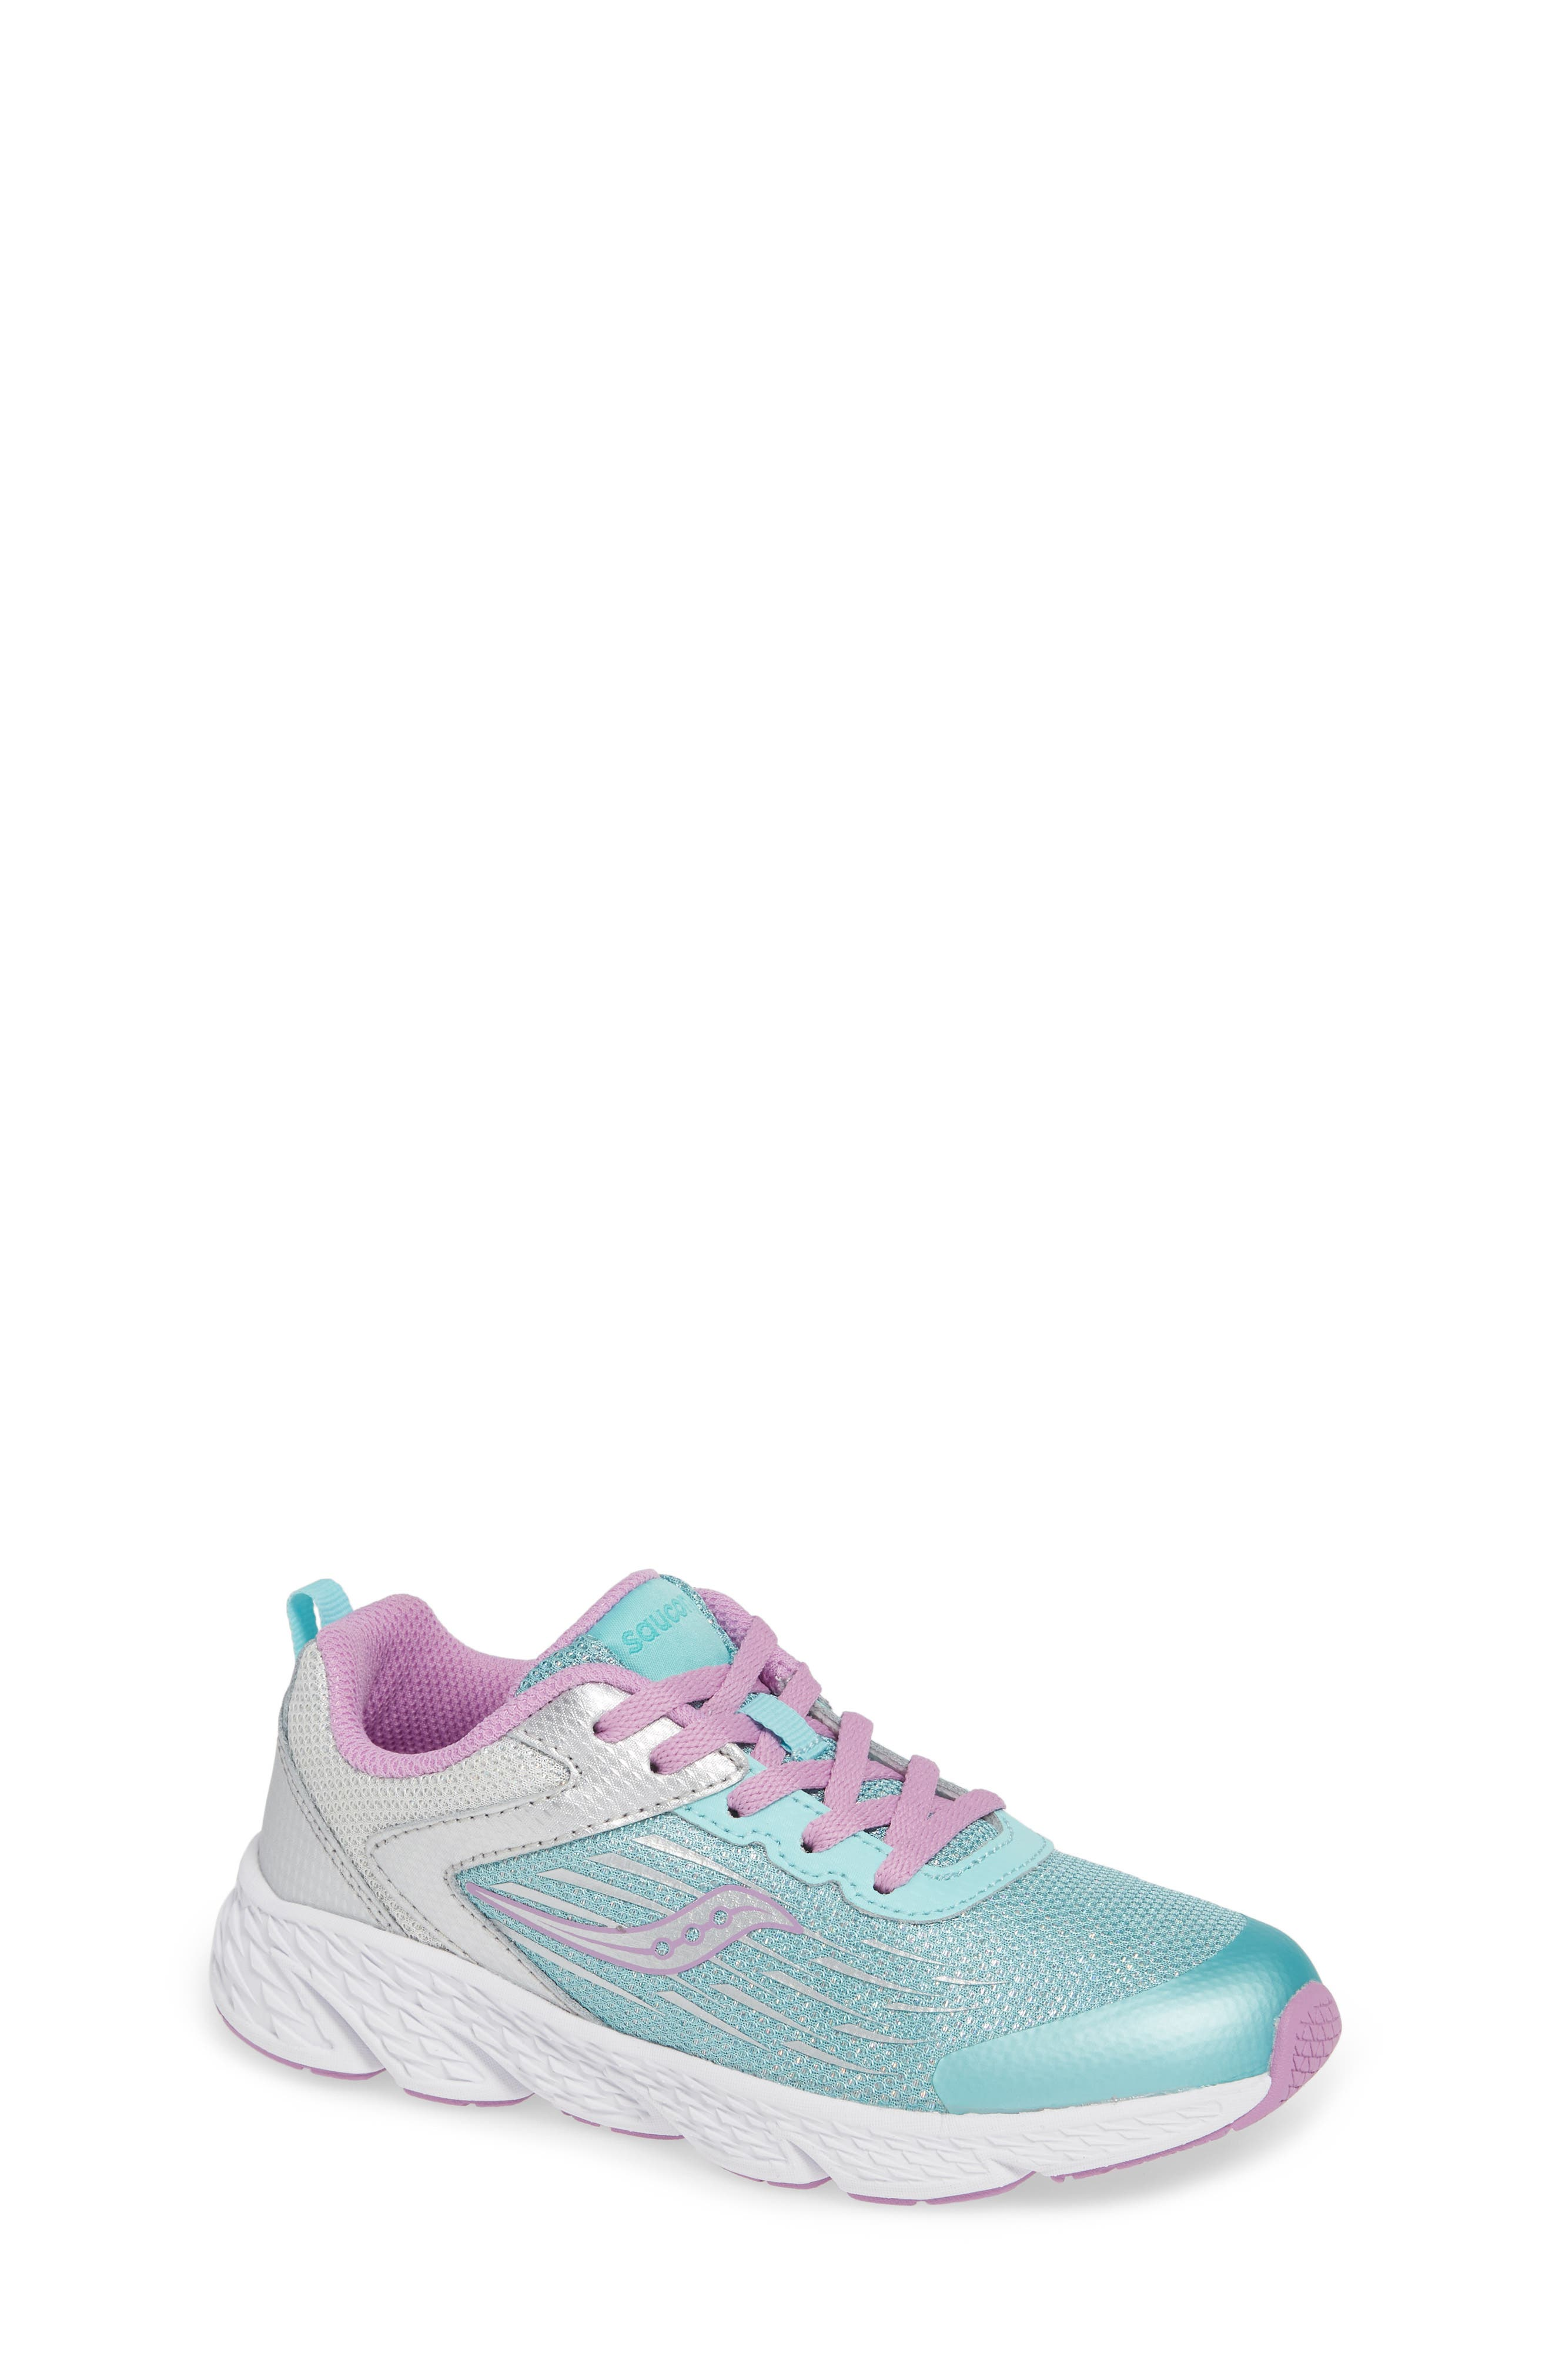 Wind Sneaker,                             Main thumbnail 1, color,                             TURQUOISE/ SILVER